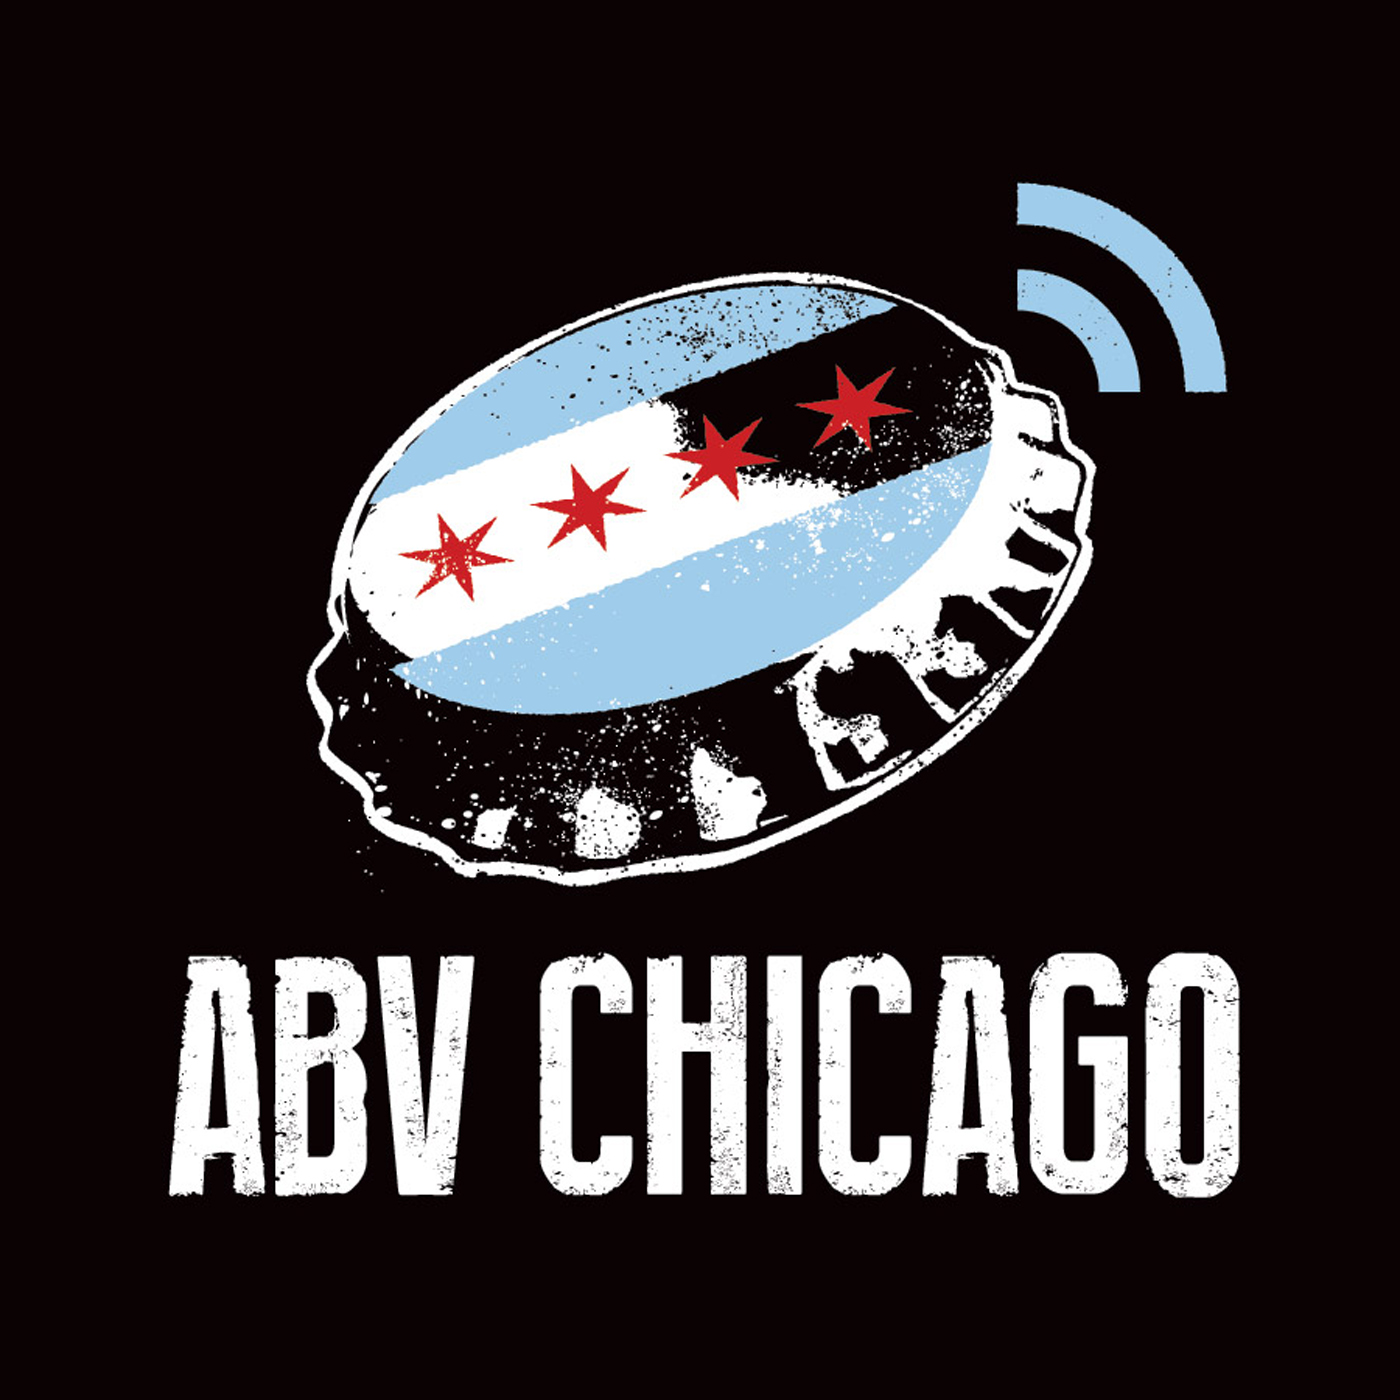 ABV Chicago Craft Beer Podcast show art